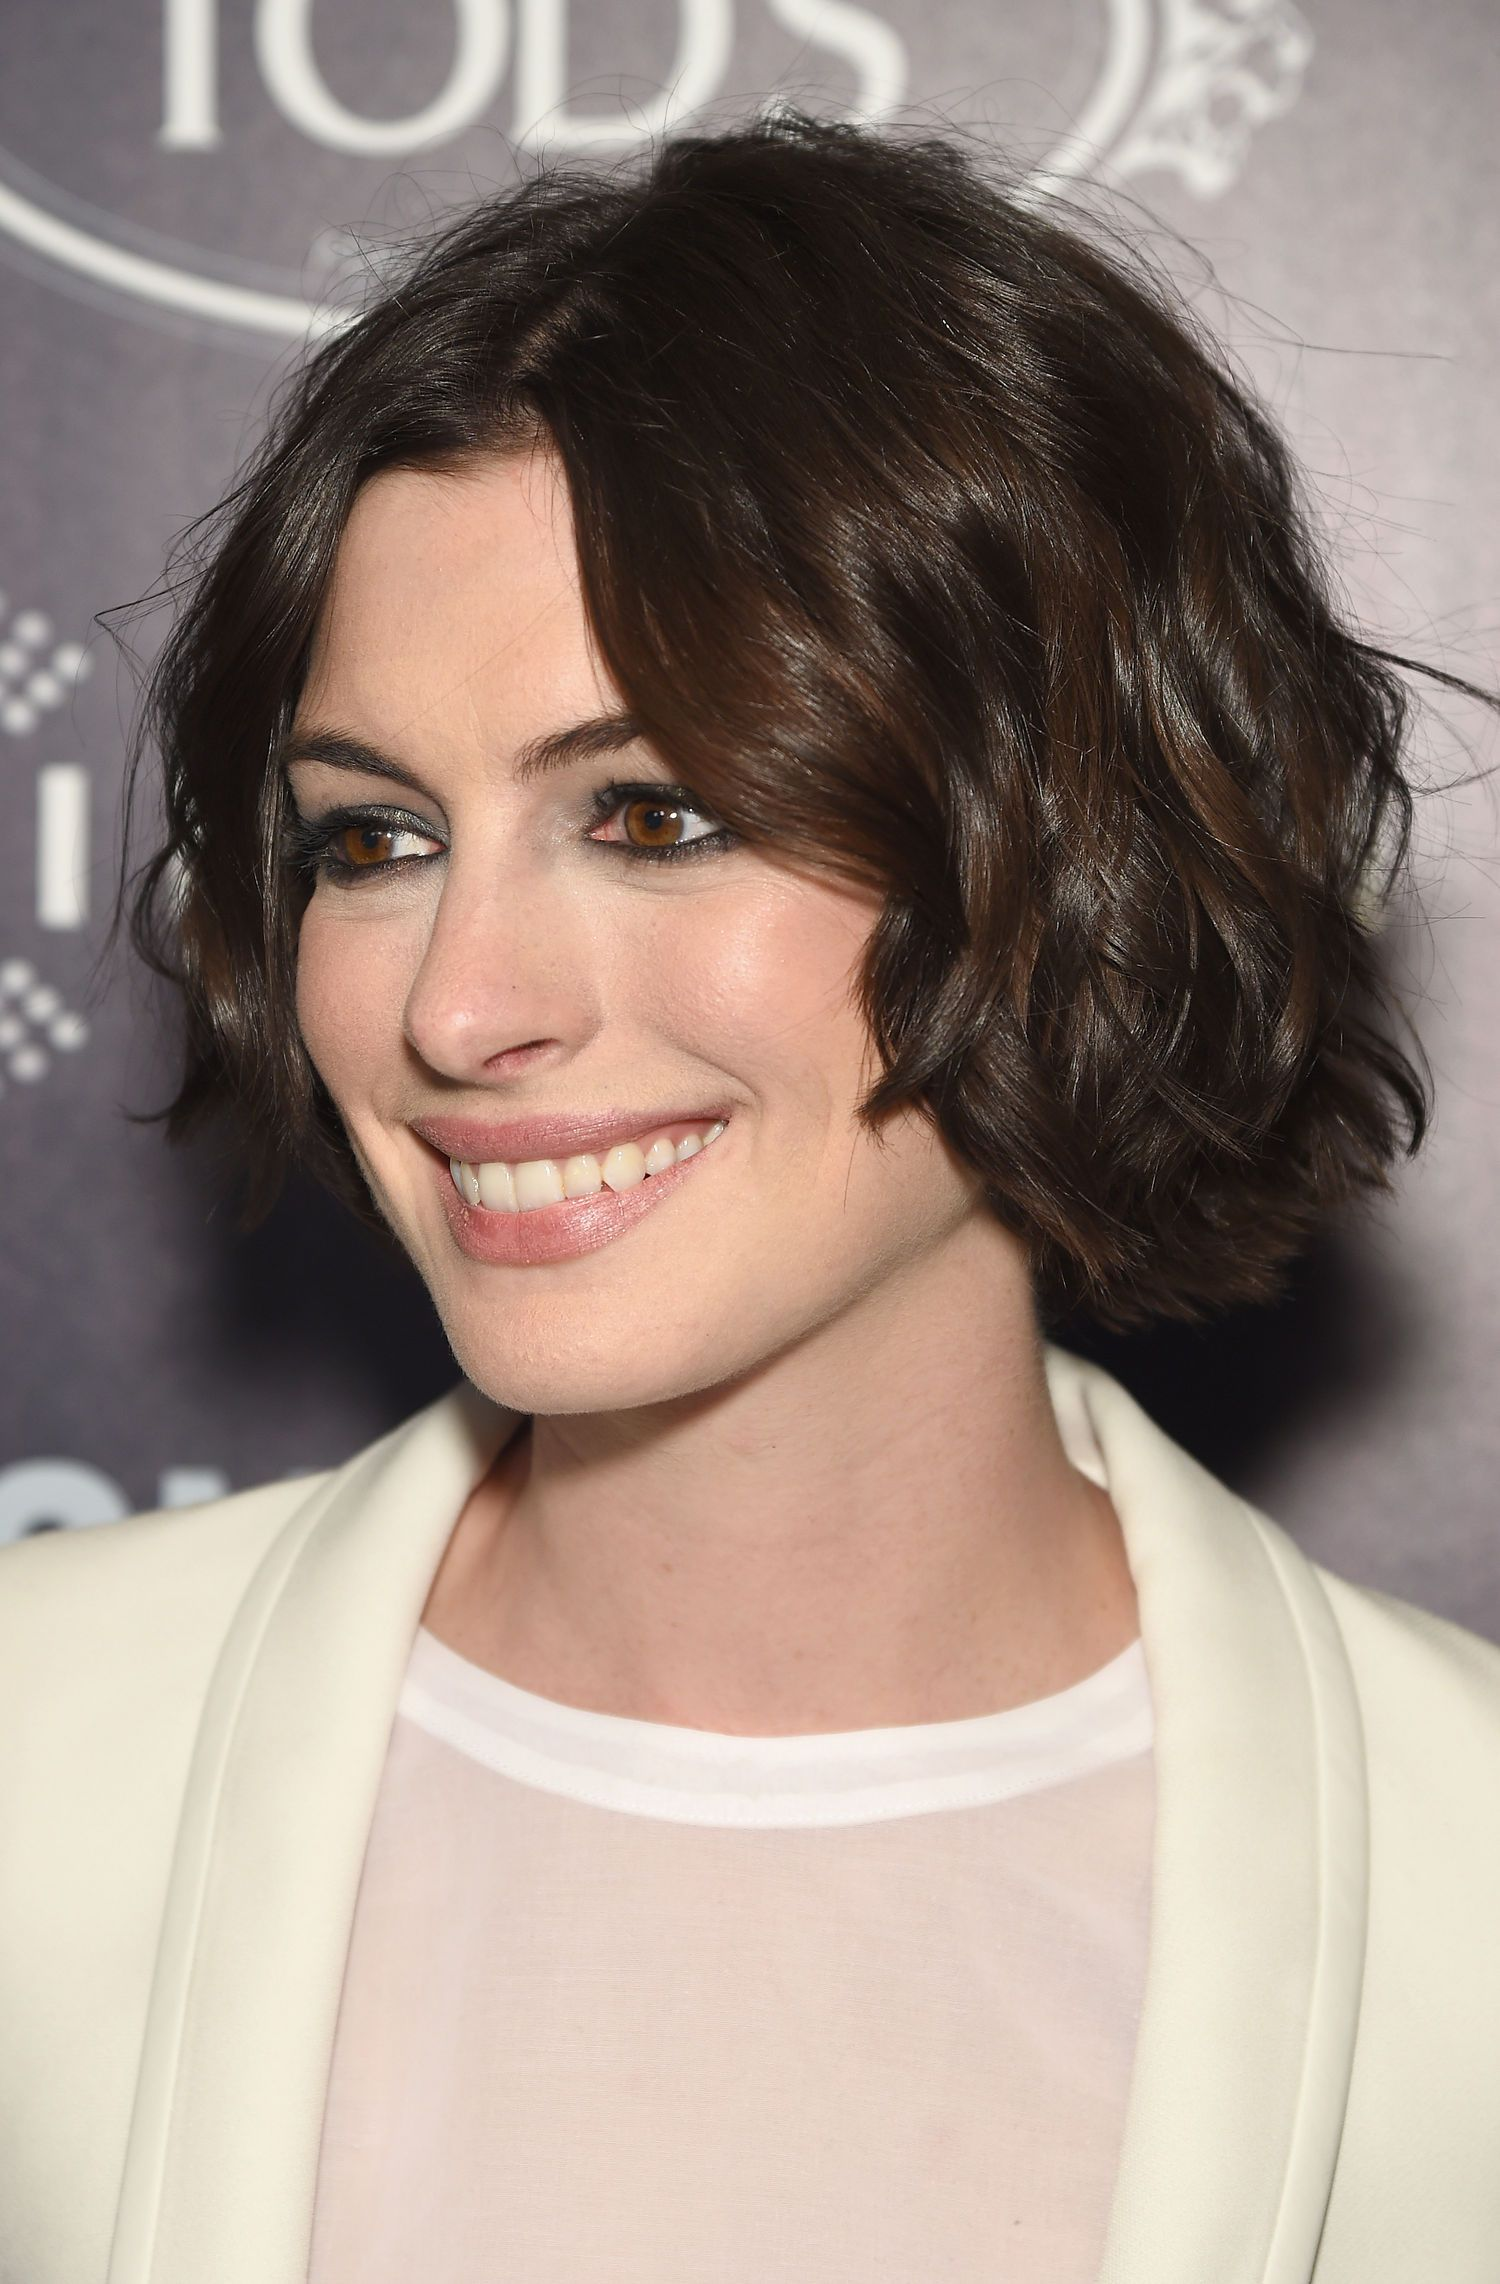 Lisa ann before plastic surgery short hairstyle 2013 - We Really Need To Discuss Anne Hathaway S Current Hair Situation